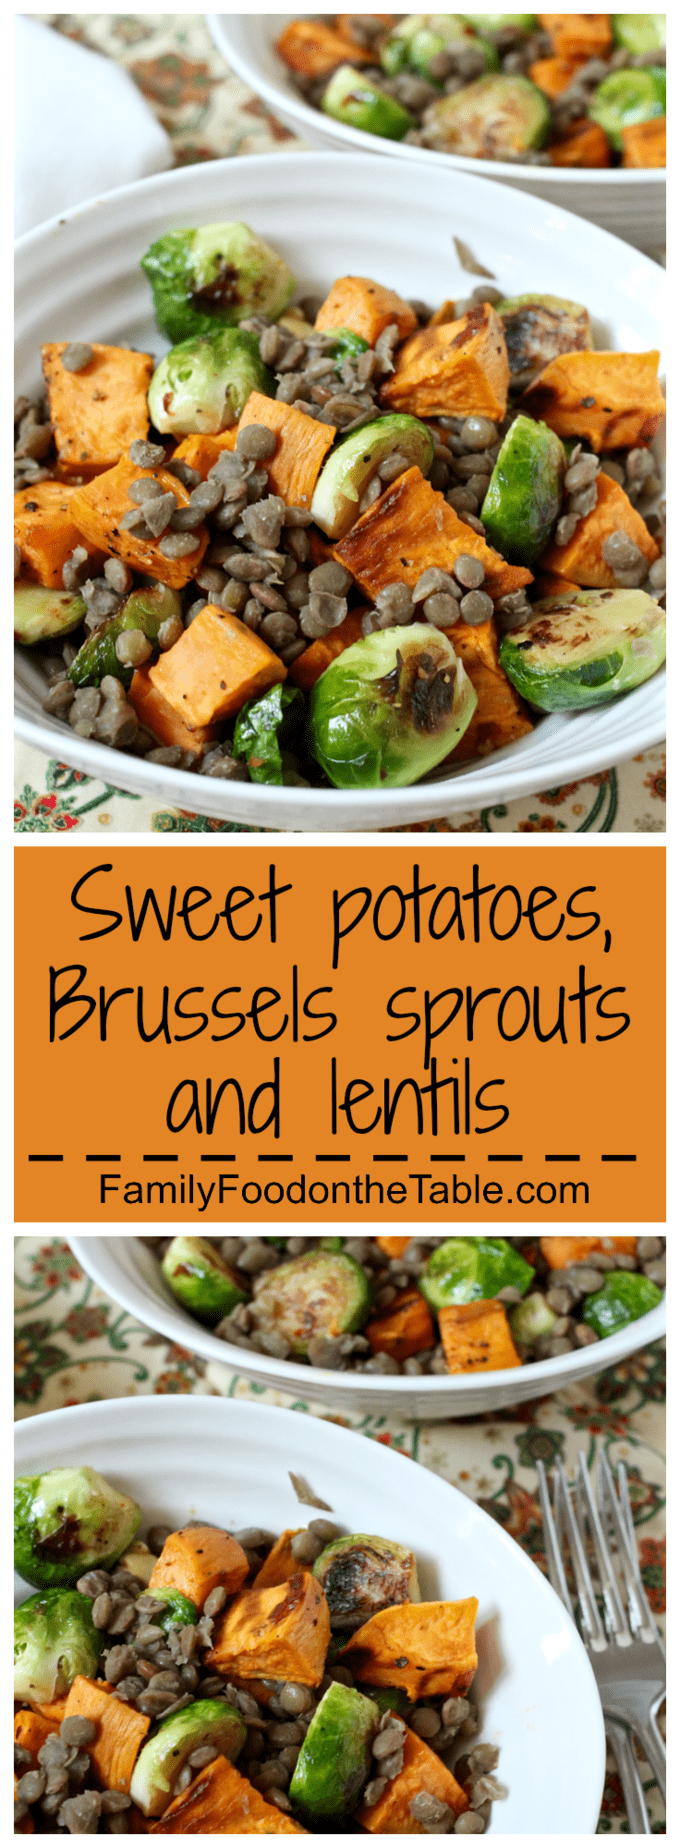 Sweet potatoes Brussels sprouts and lentils - a wholesome, hearty combination that makes a powerhouse side or vegetarian main! | FamilyFoodontheTable.com